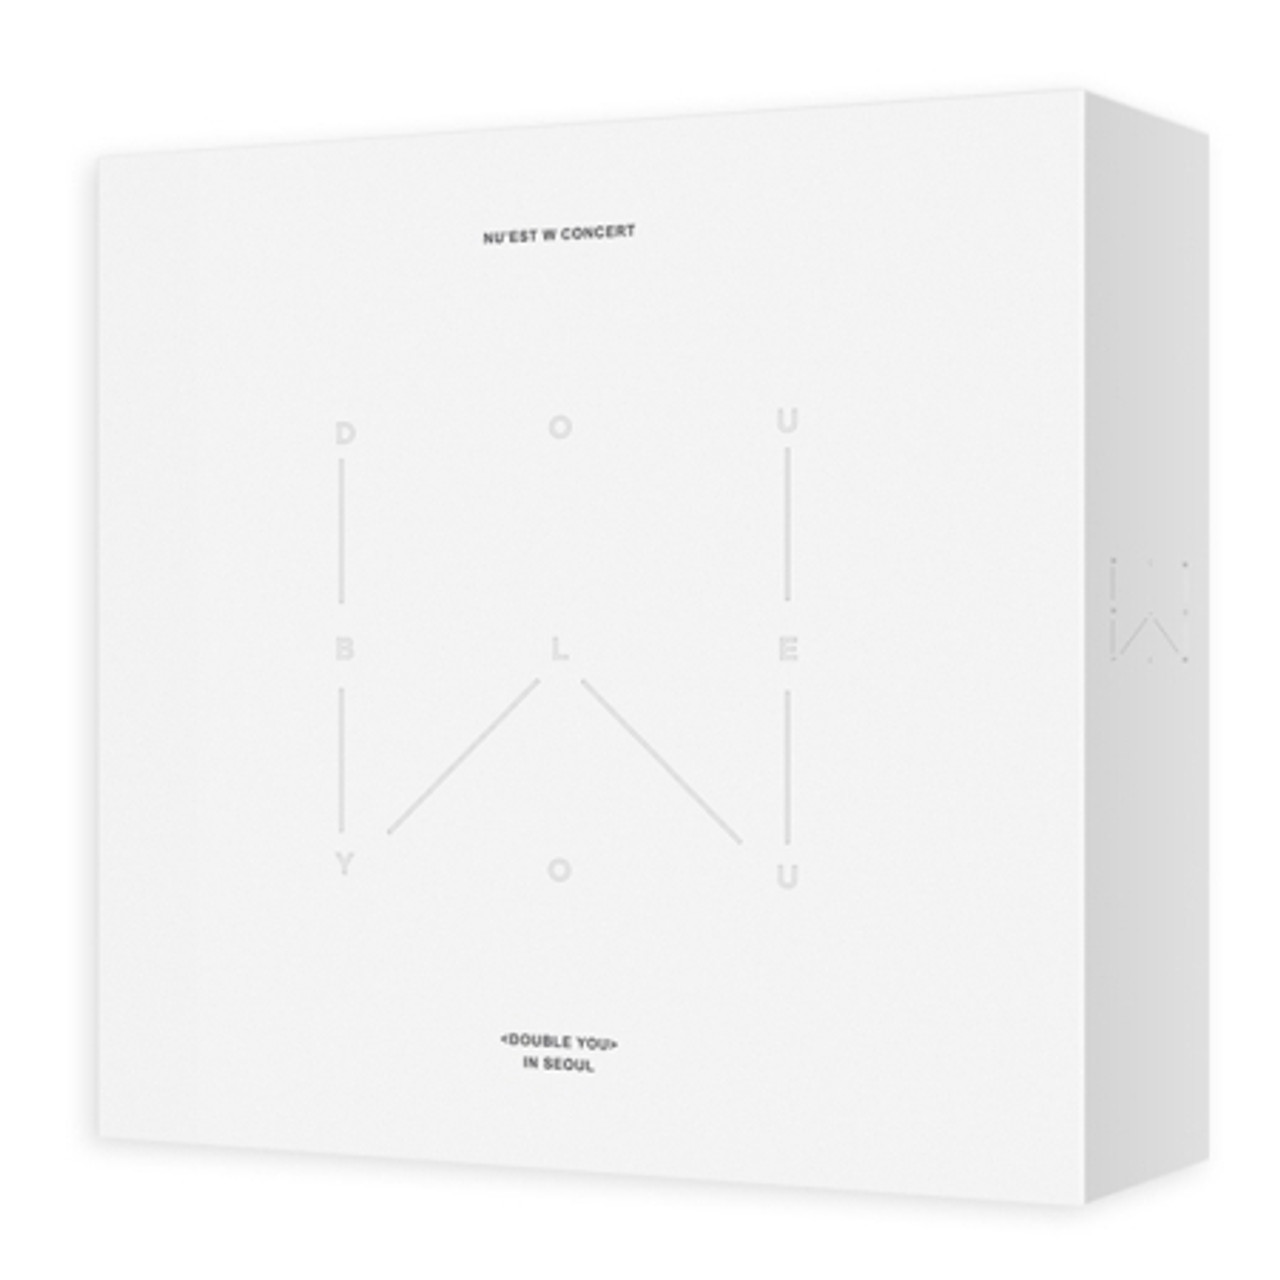 NUEST - W CONCERT  <DOUBLE YOU> IN SEOUL DVD